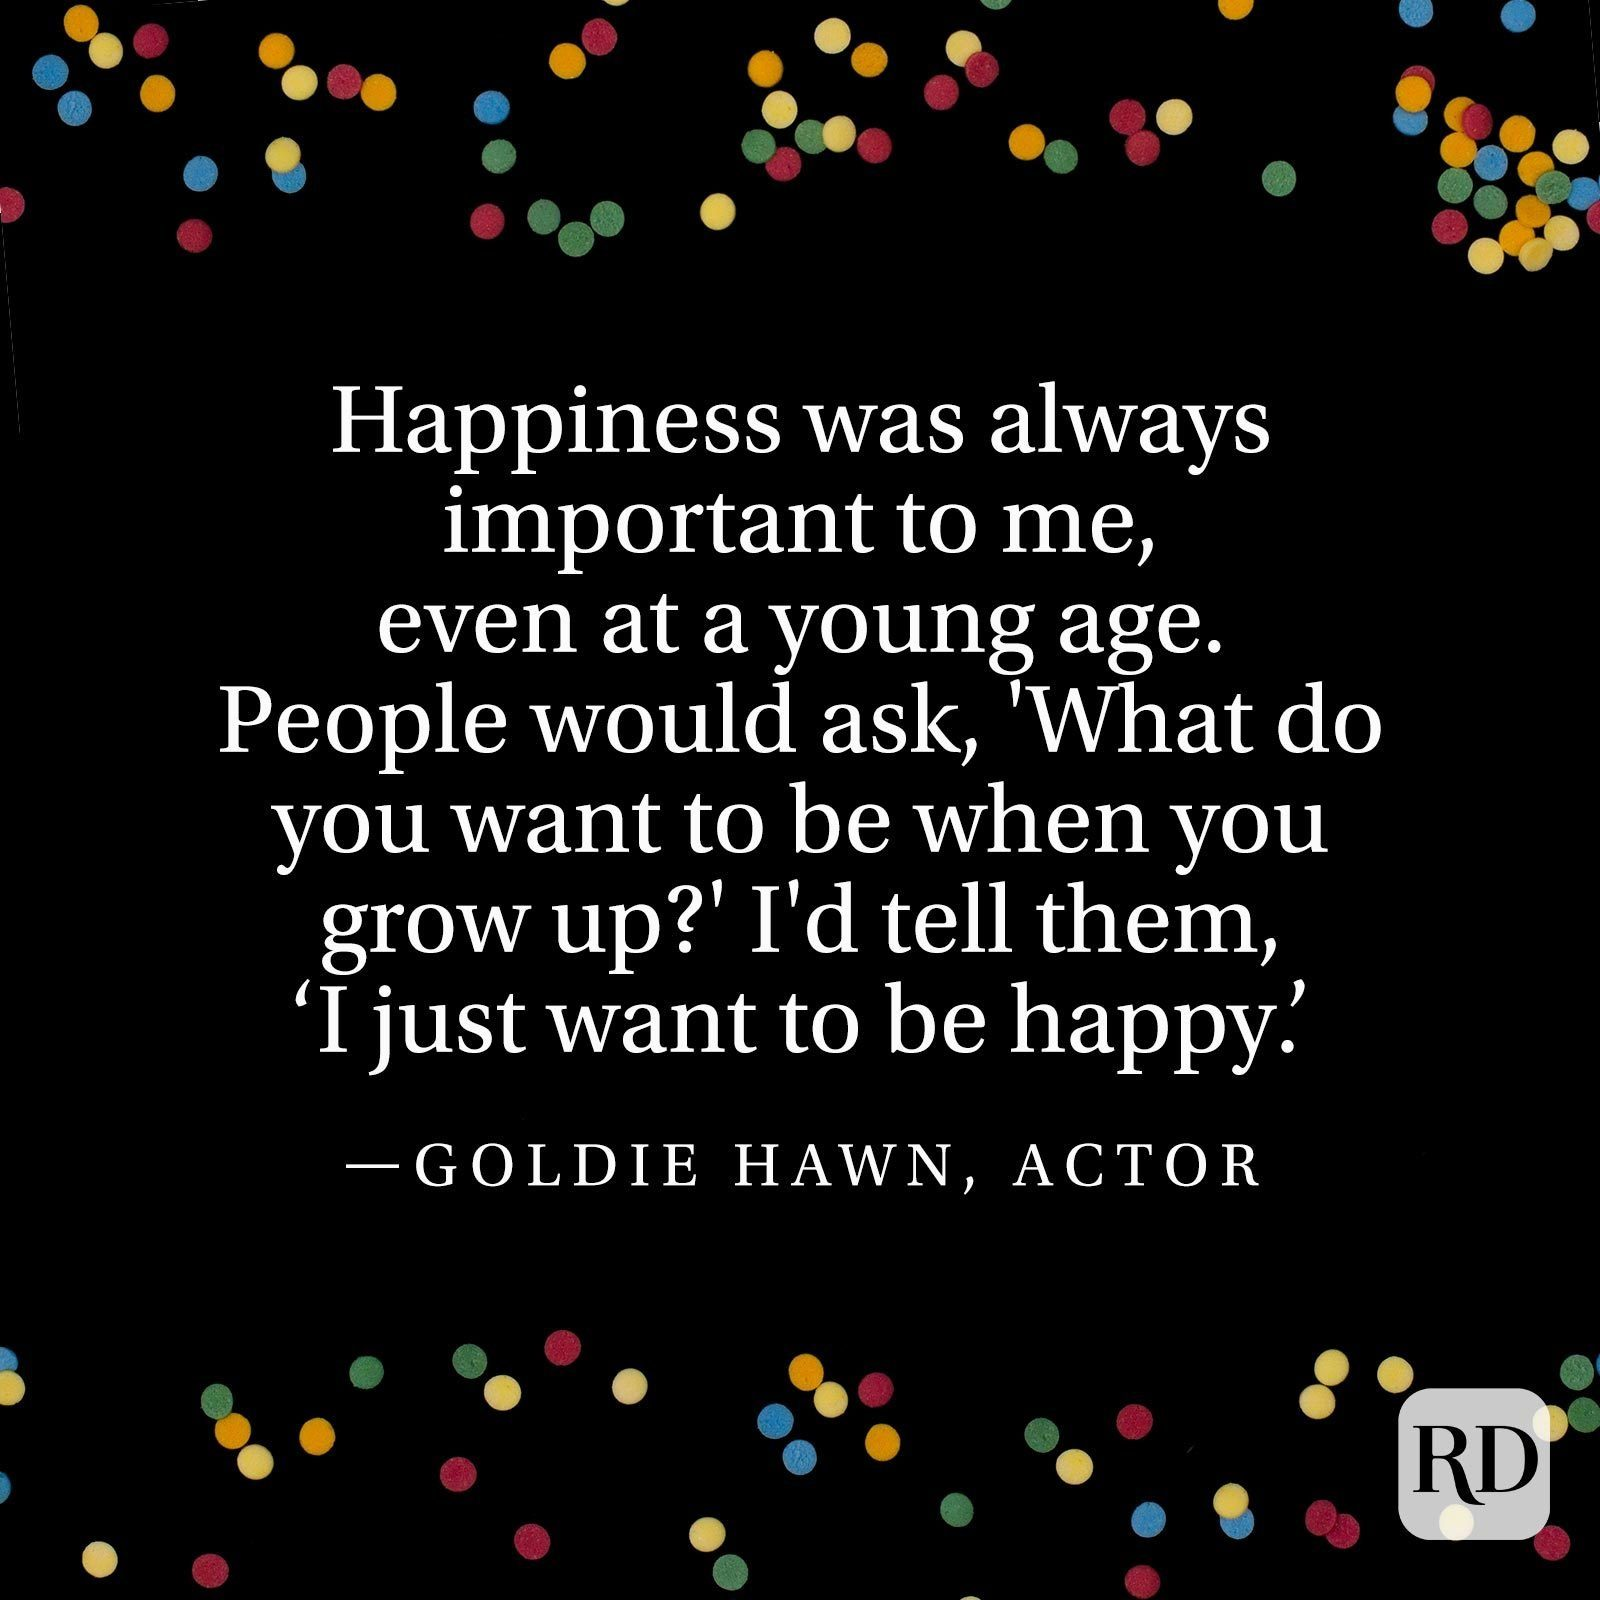 """""""Happiness was always important to me, even at a young age. People would ask, 'What do you want to be when you grow up?' I'd tell them, 'I just want to be happy.'"""" —Goldie Hawn, actor"""